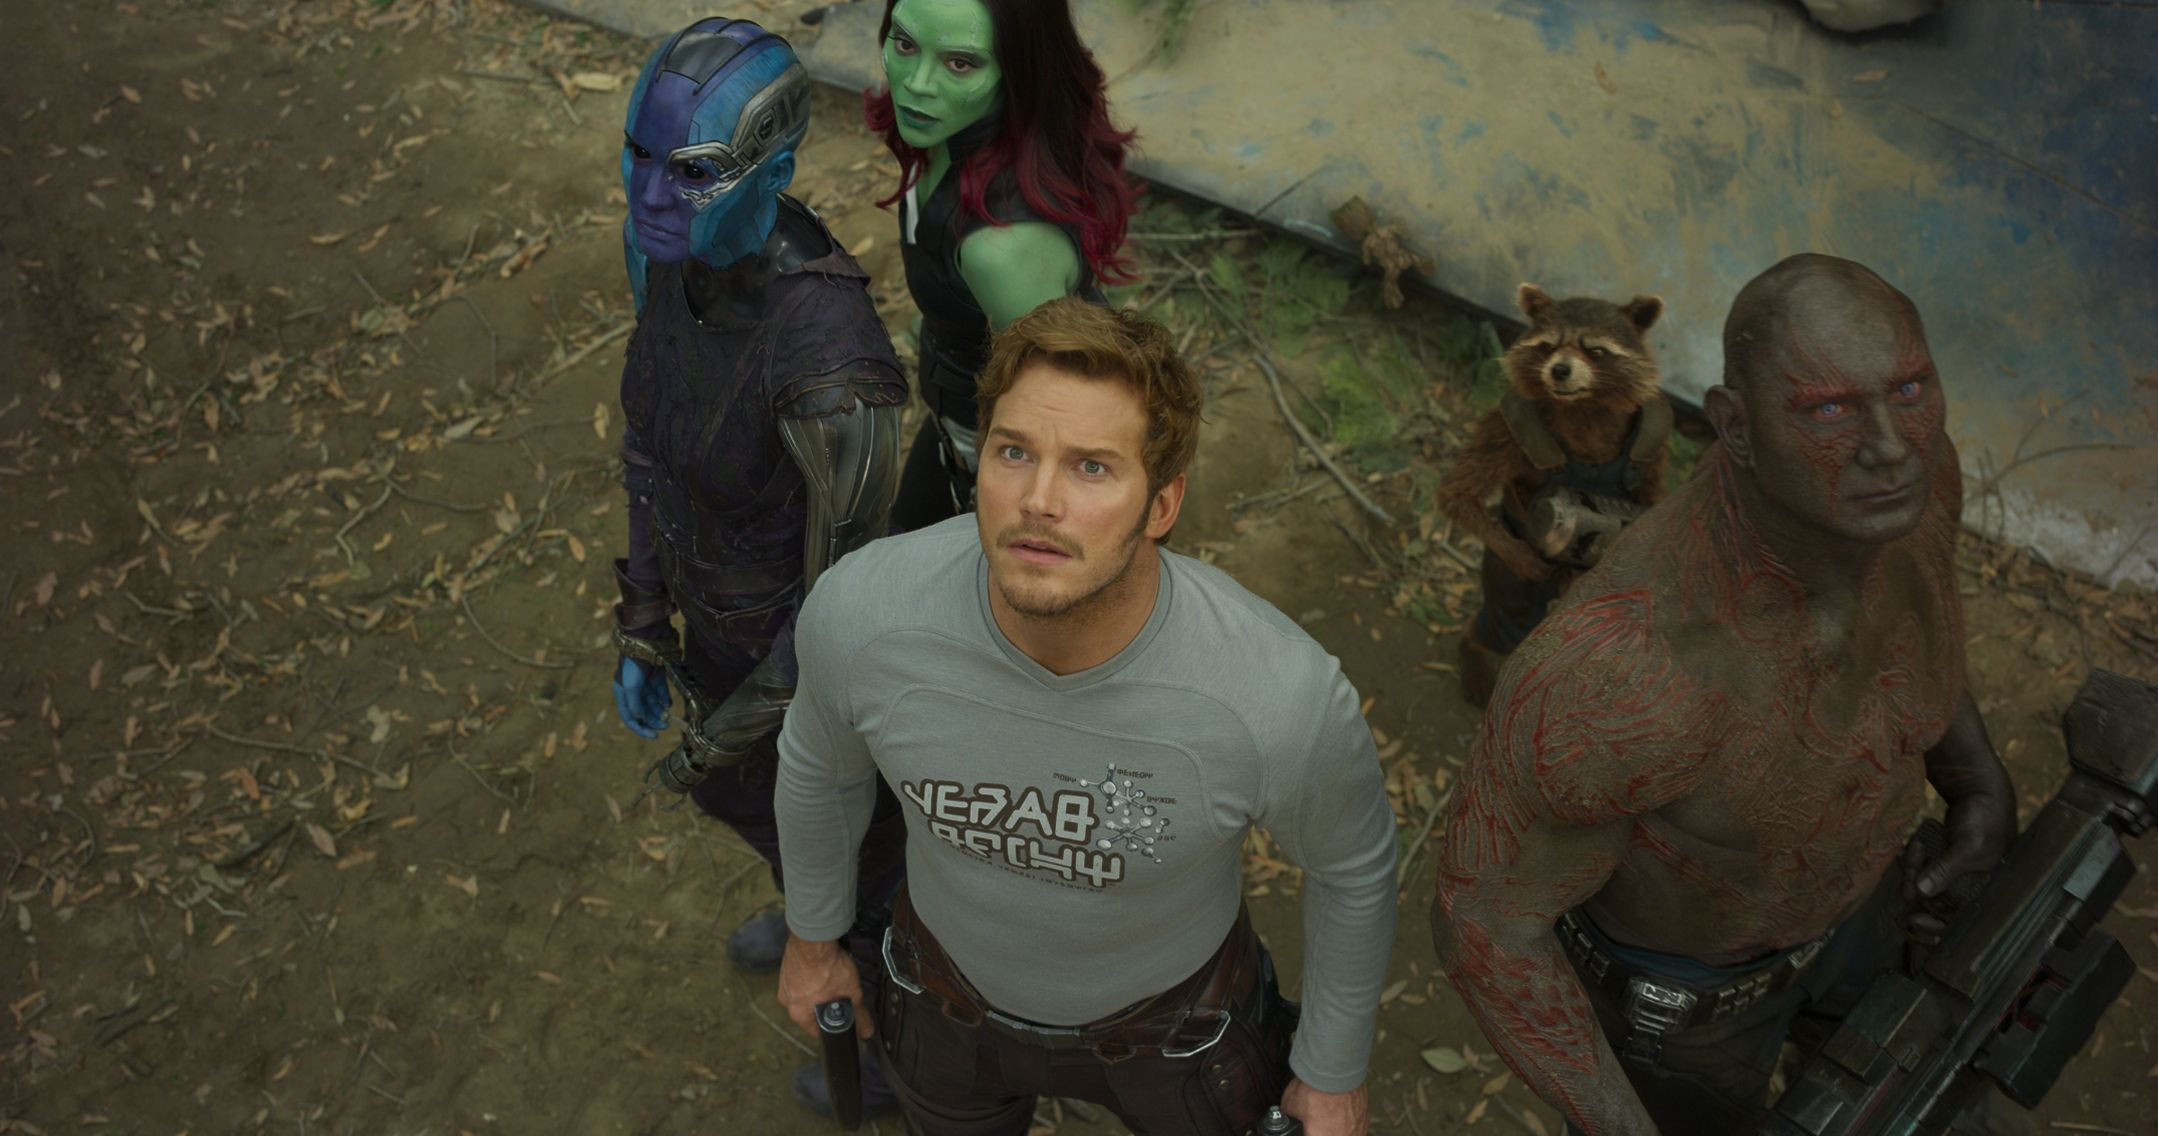 guardians of the galaxy 2 aftercredits scenes there are